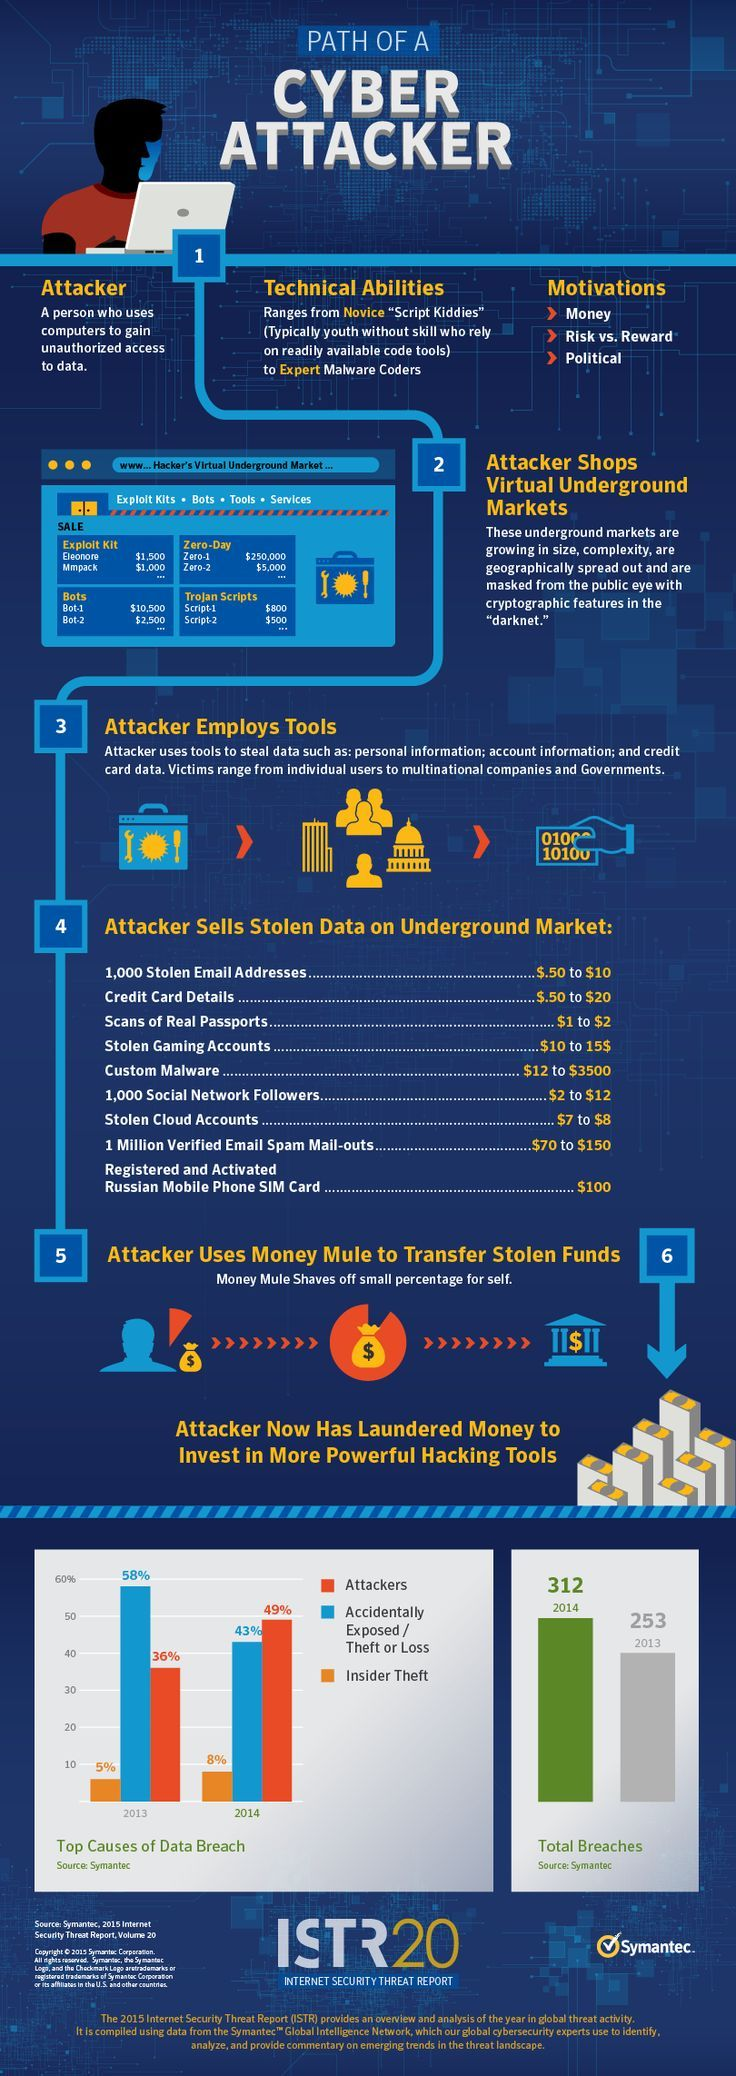 The path of a cyberattacker by Symantics. Download the